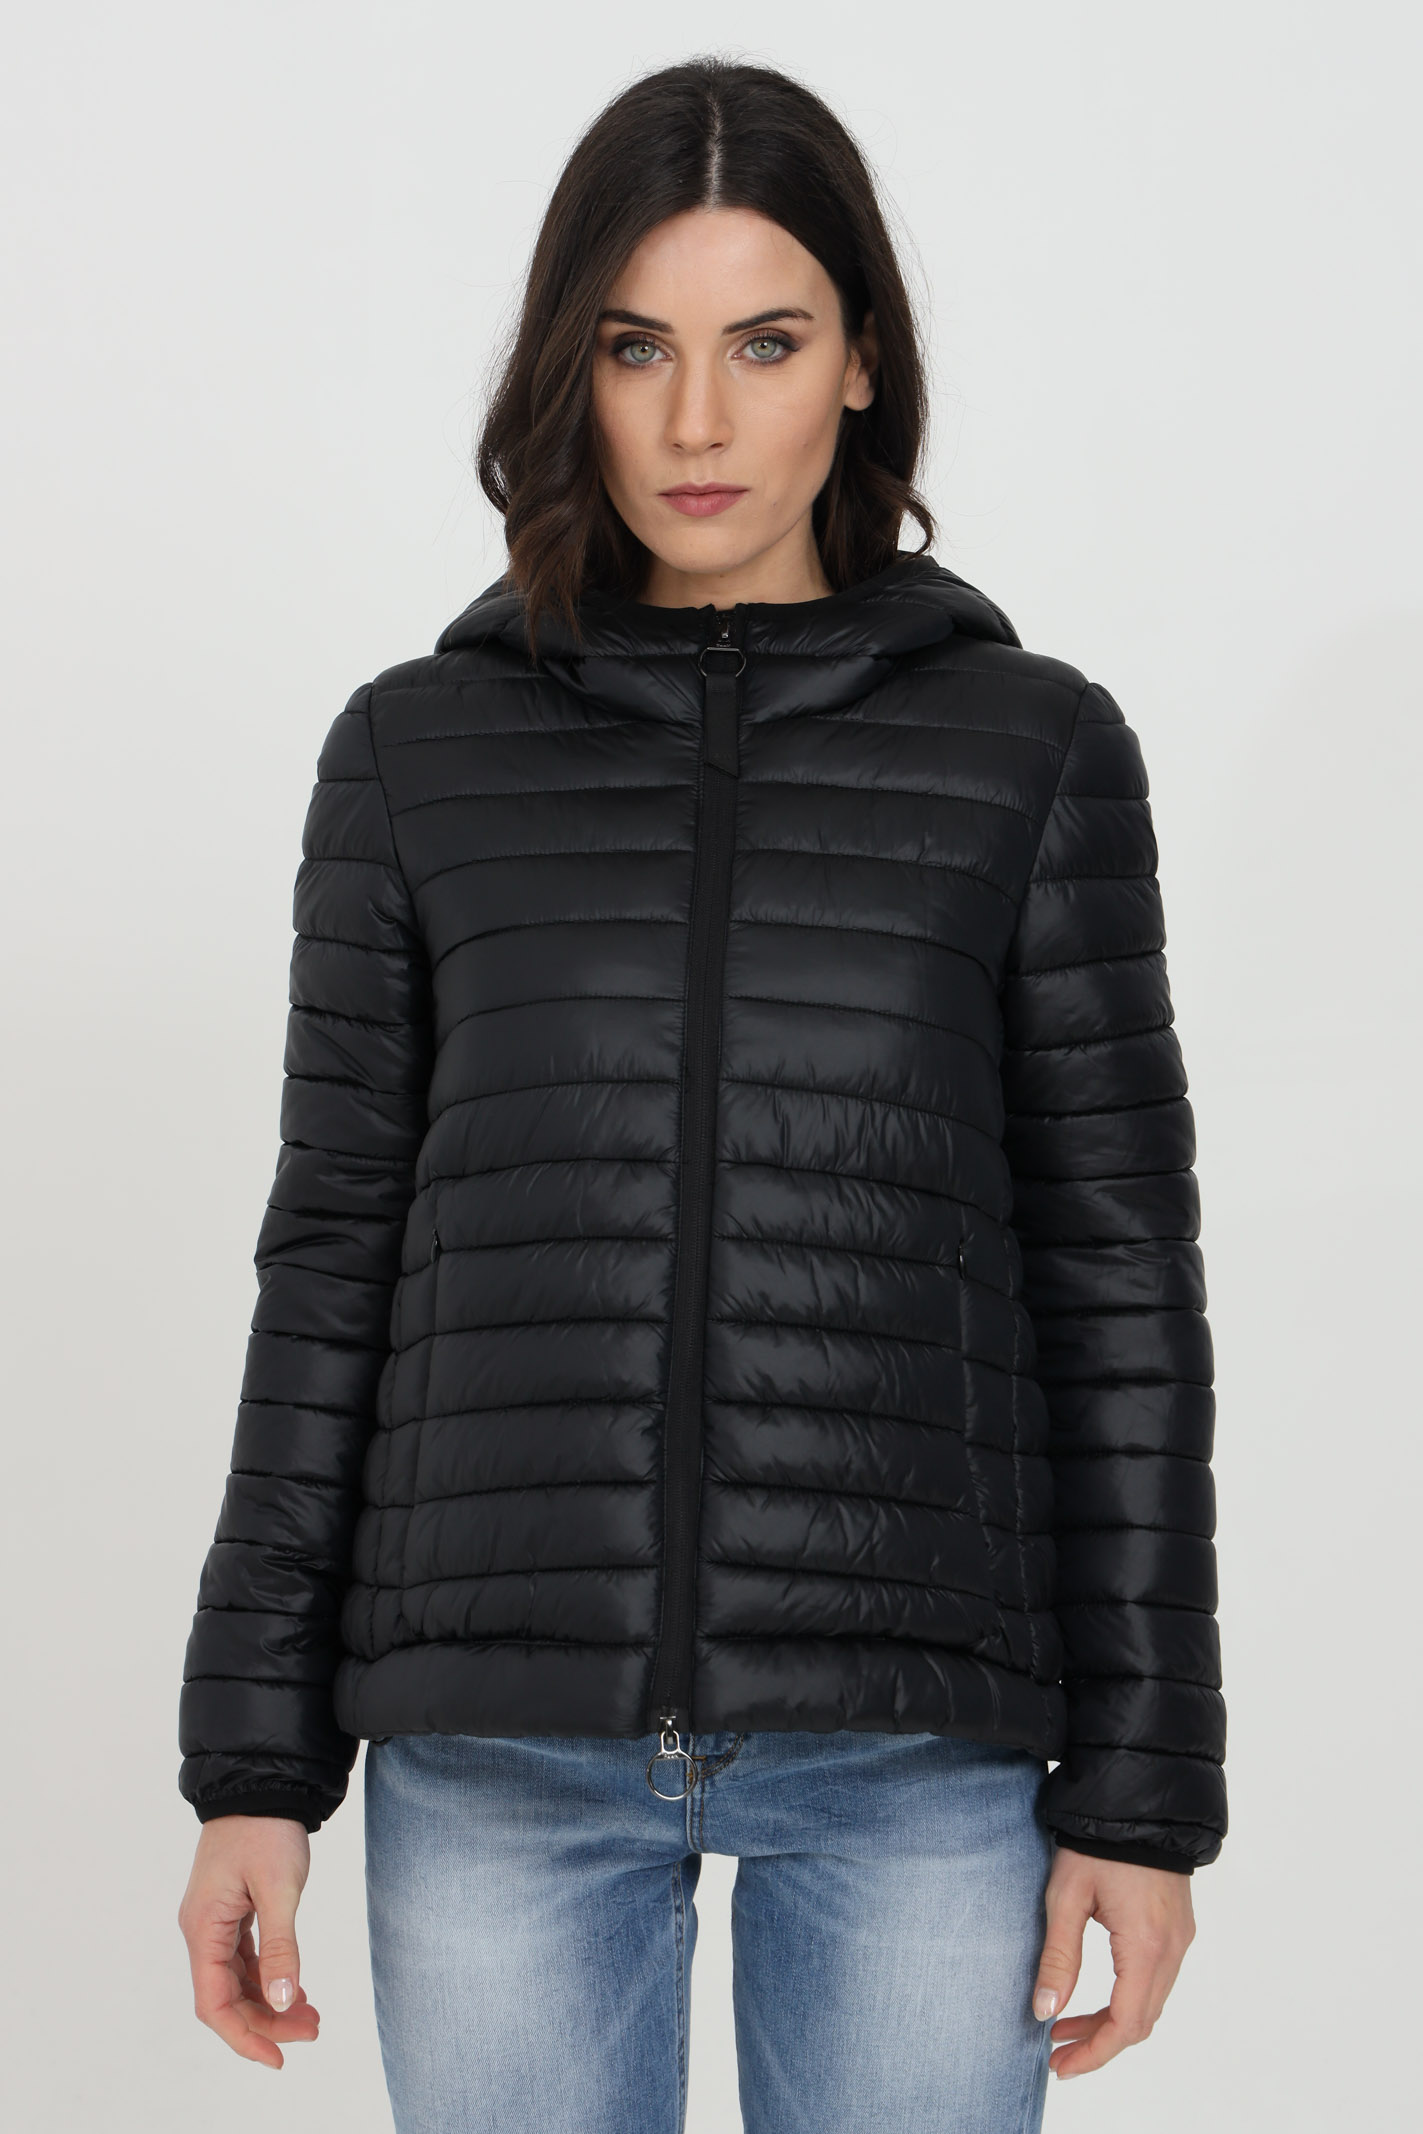 Solid color down jacket with hood and side zip pockets F**K | Jacket | IFKW905Z908BLACK